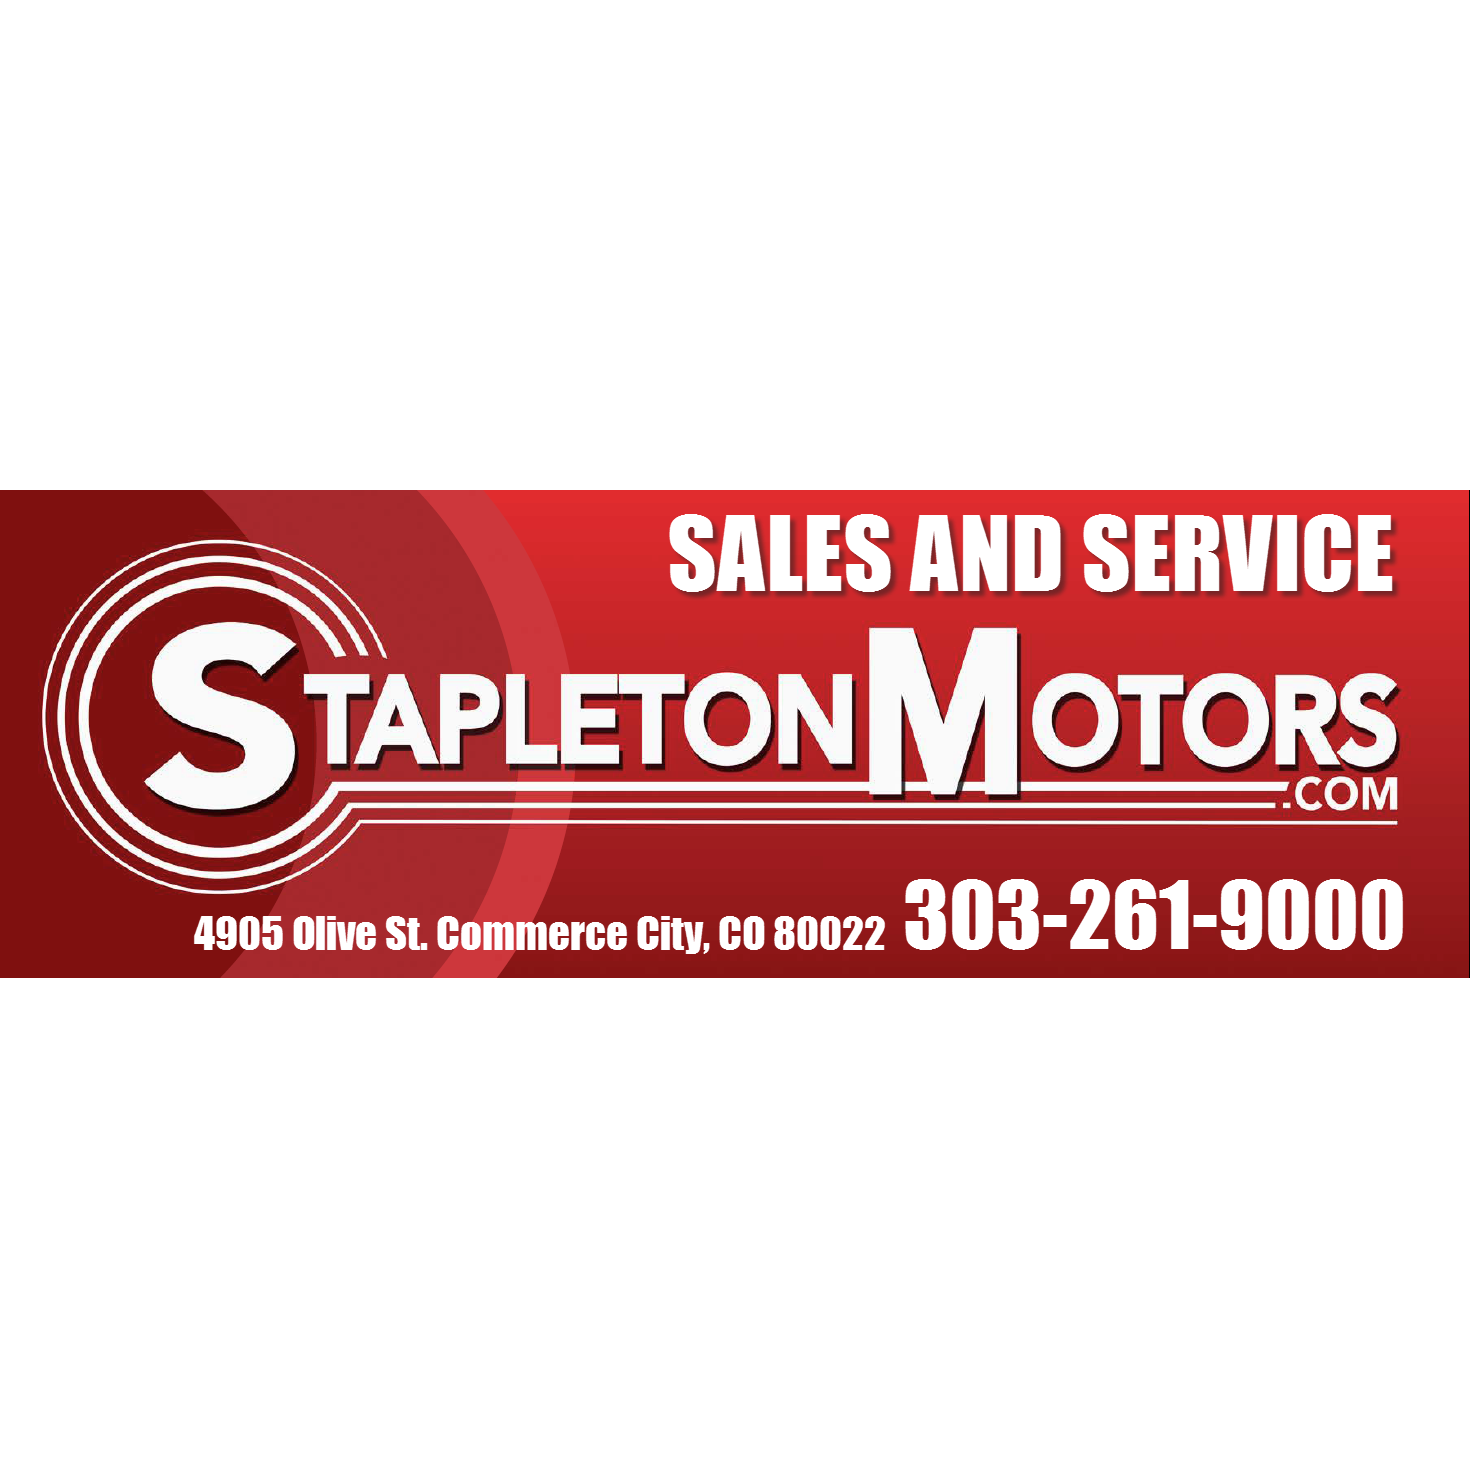 Stapleton Motors